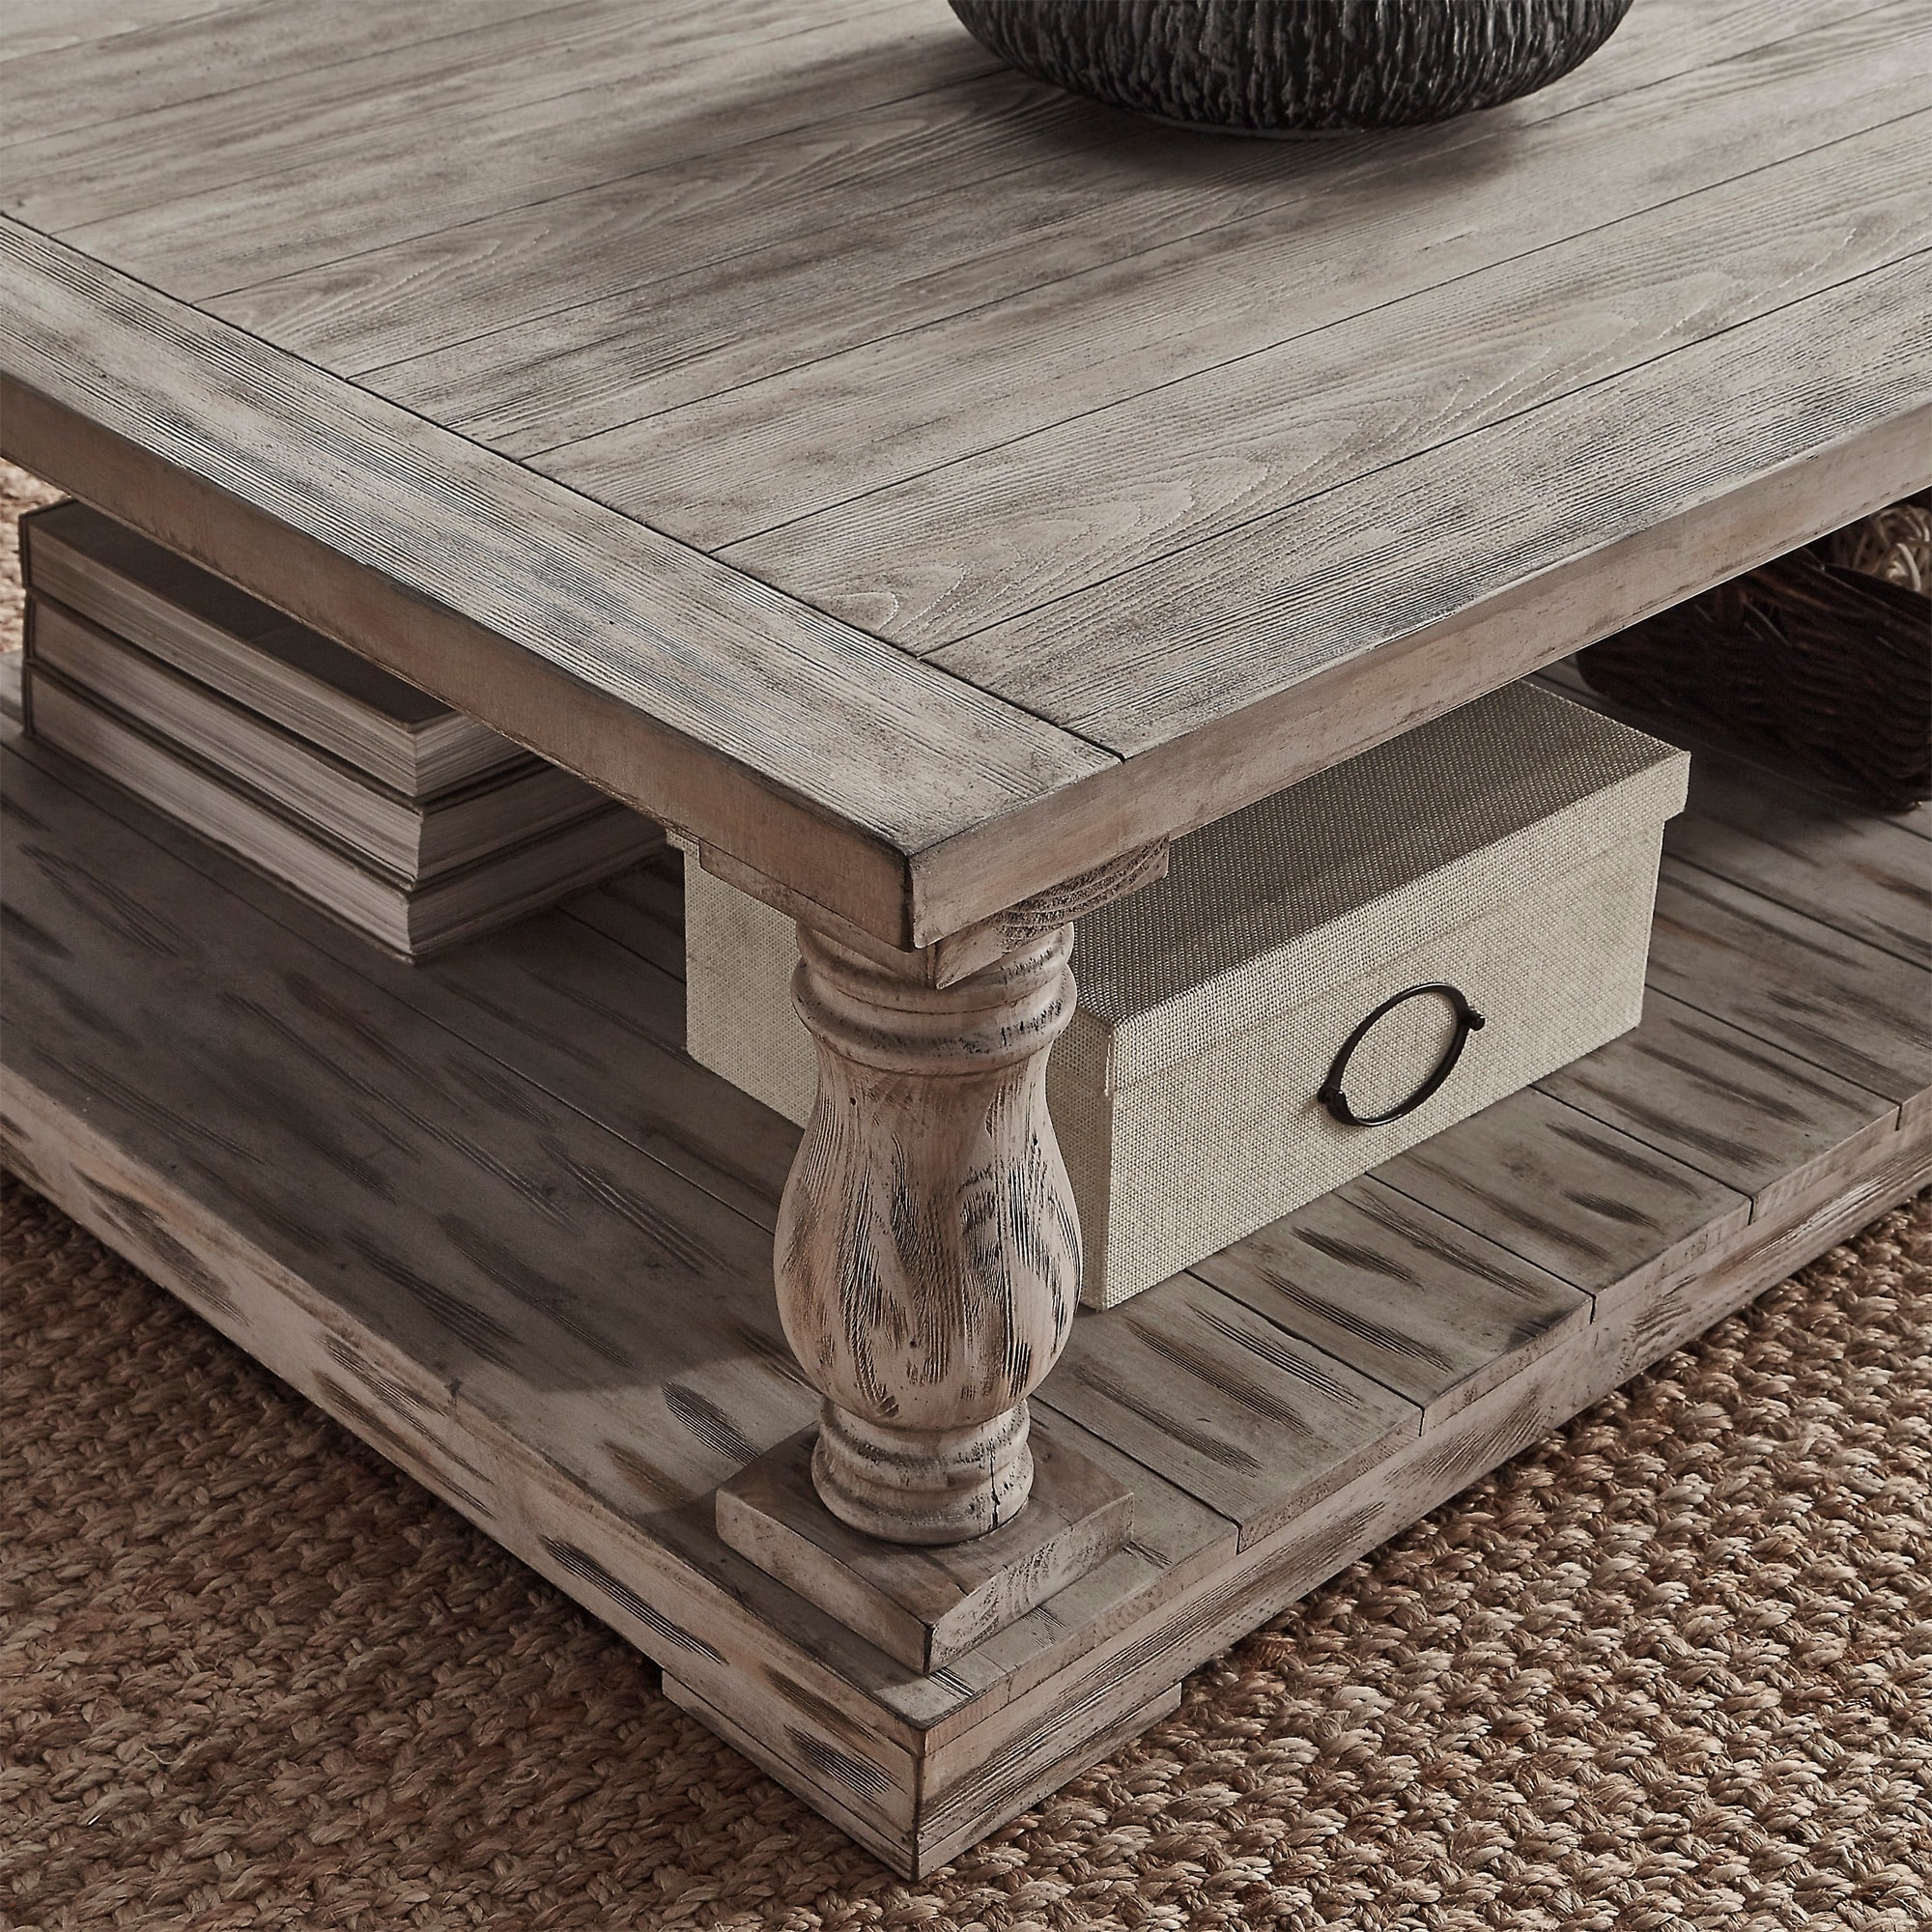 Most Recent Edmaire Rustic Pine Baluster Coffee Tables Regarding Signal Hills Edmaire Rustic Baluster 60 Inch Coffee Table (View 14 of 20)